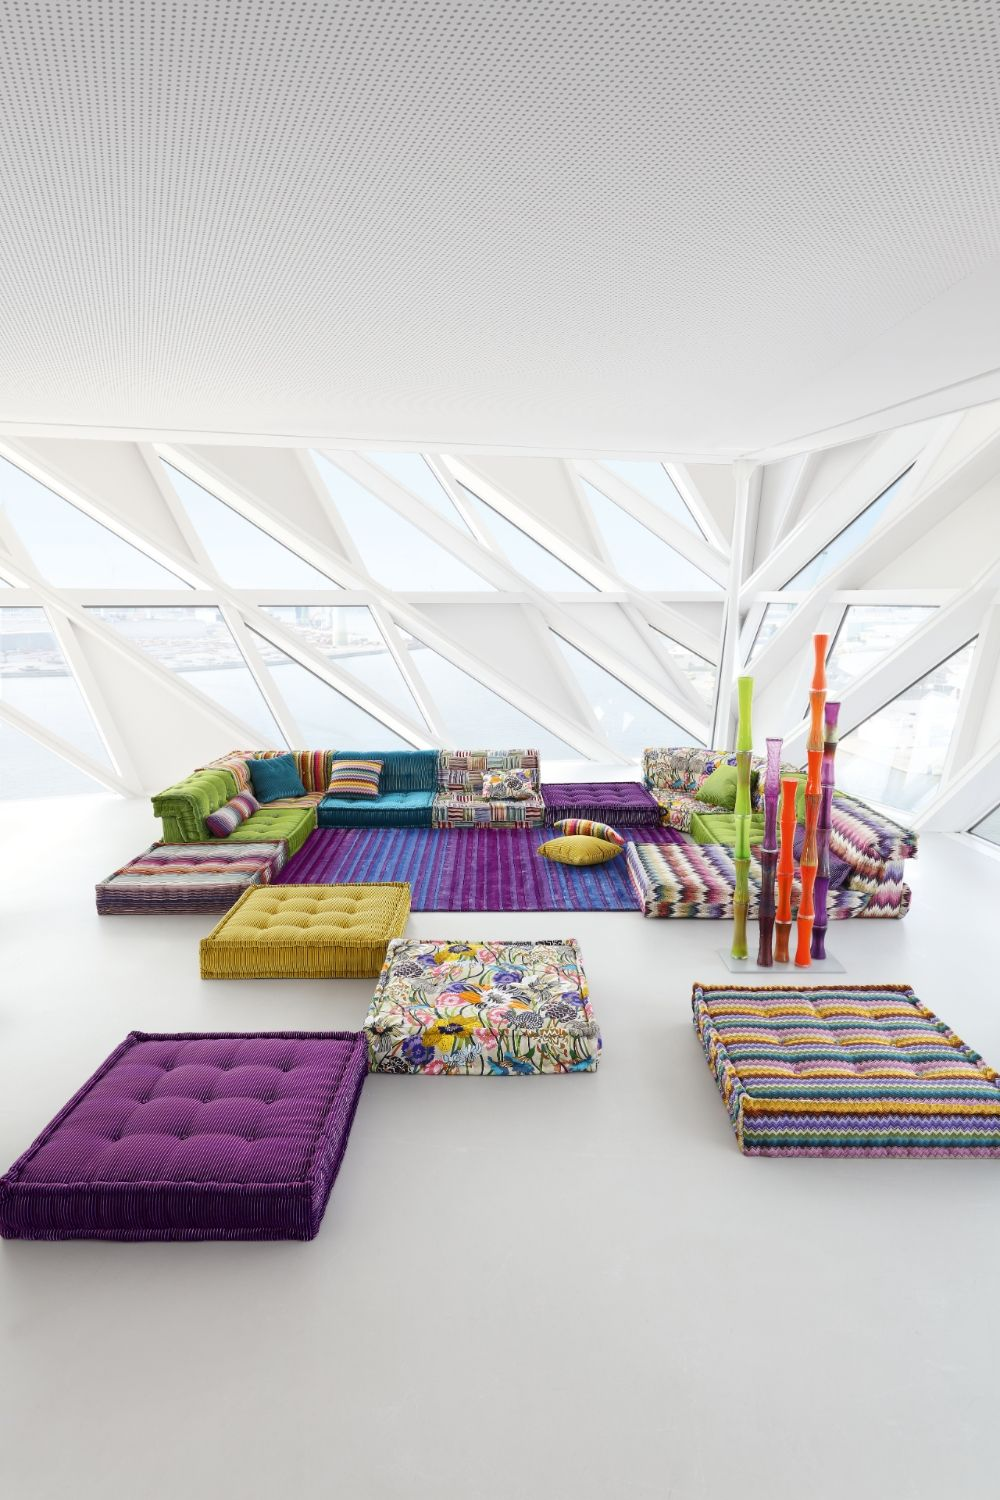 See Your Dream Living Room Come to Life with Digital Tools by Roche Bobois